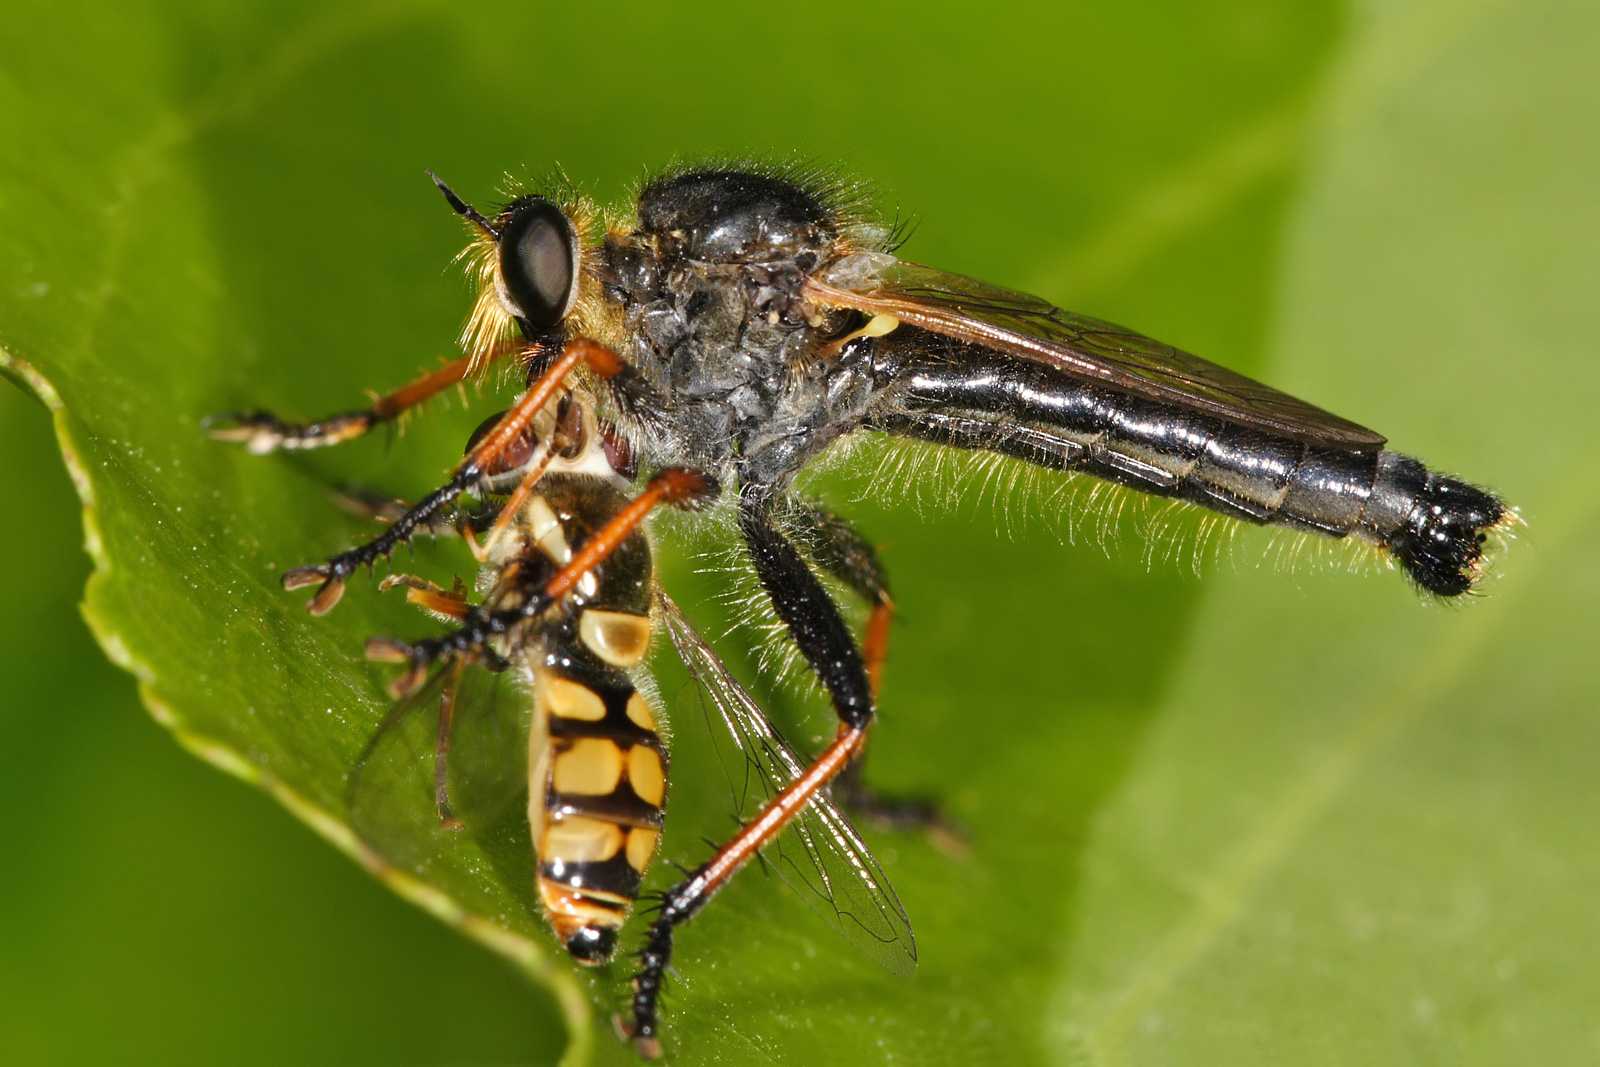 common_brown_robberfly_with_prey.jpg